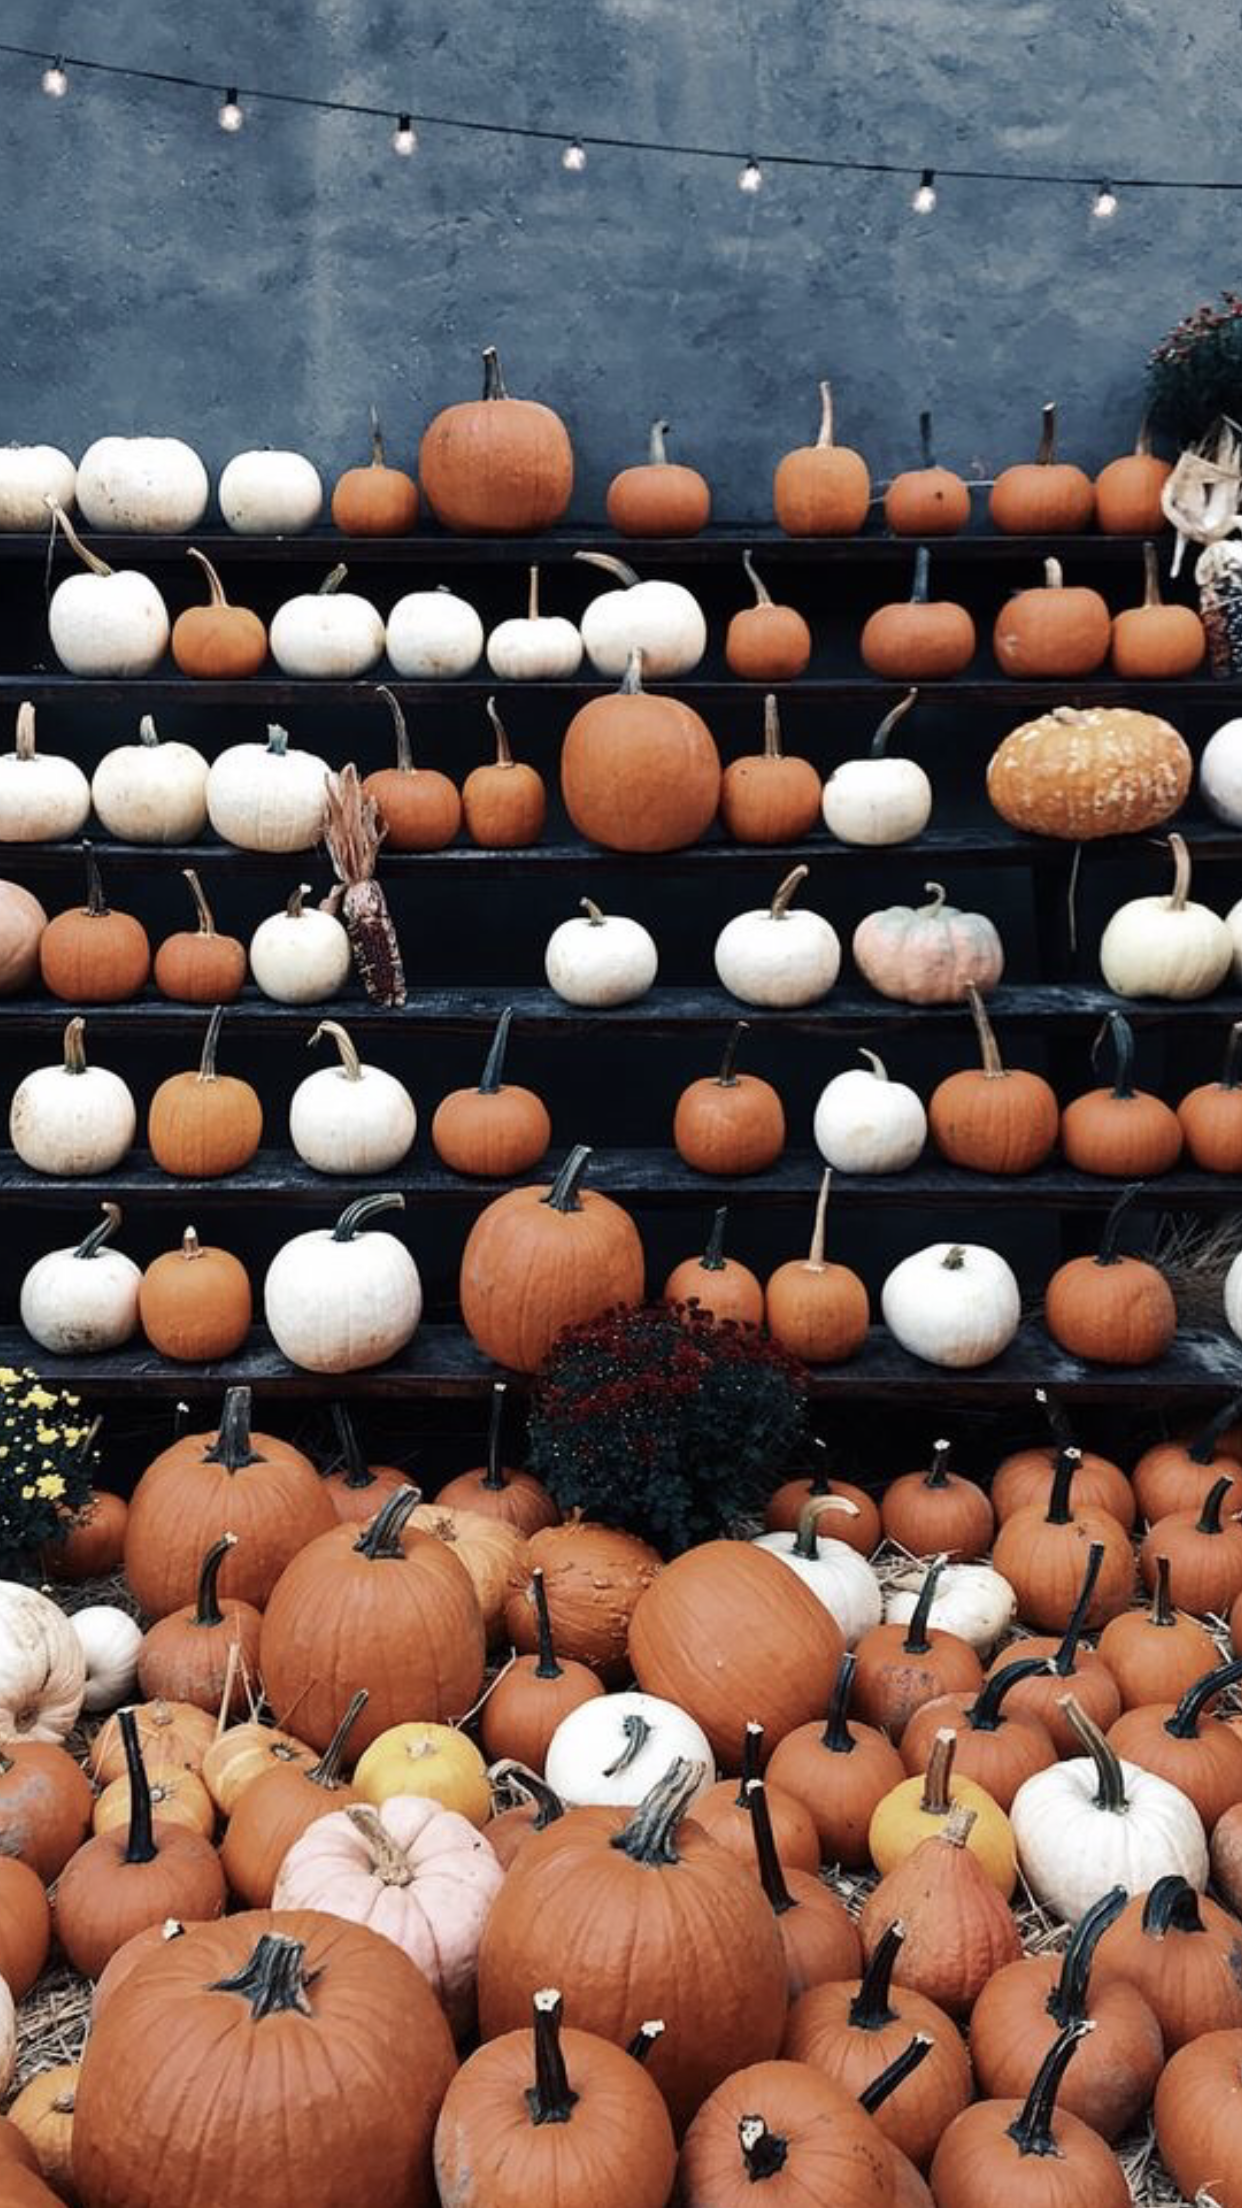 21 Aesthetic Fall Iphone Wallpapers You Need for Spooky Season ...